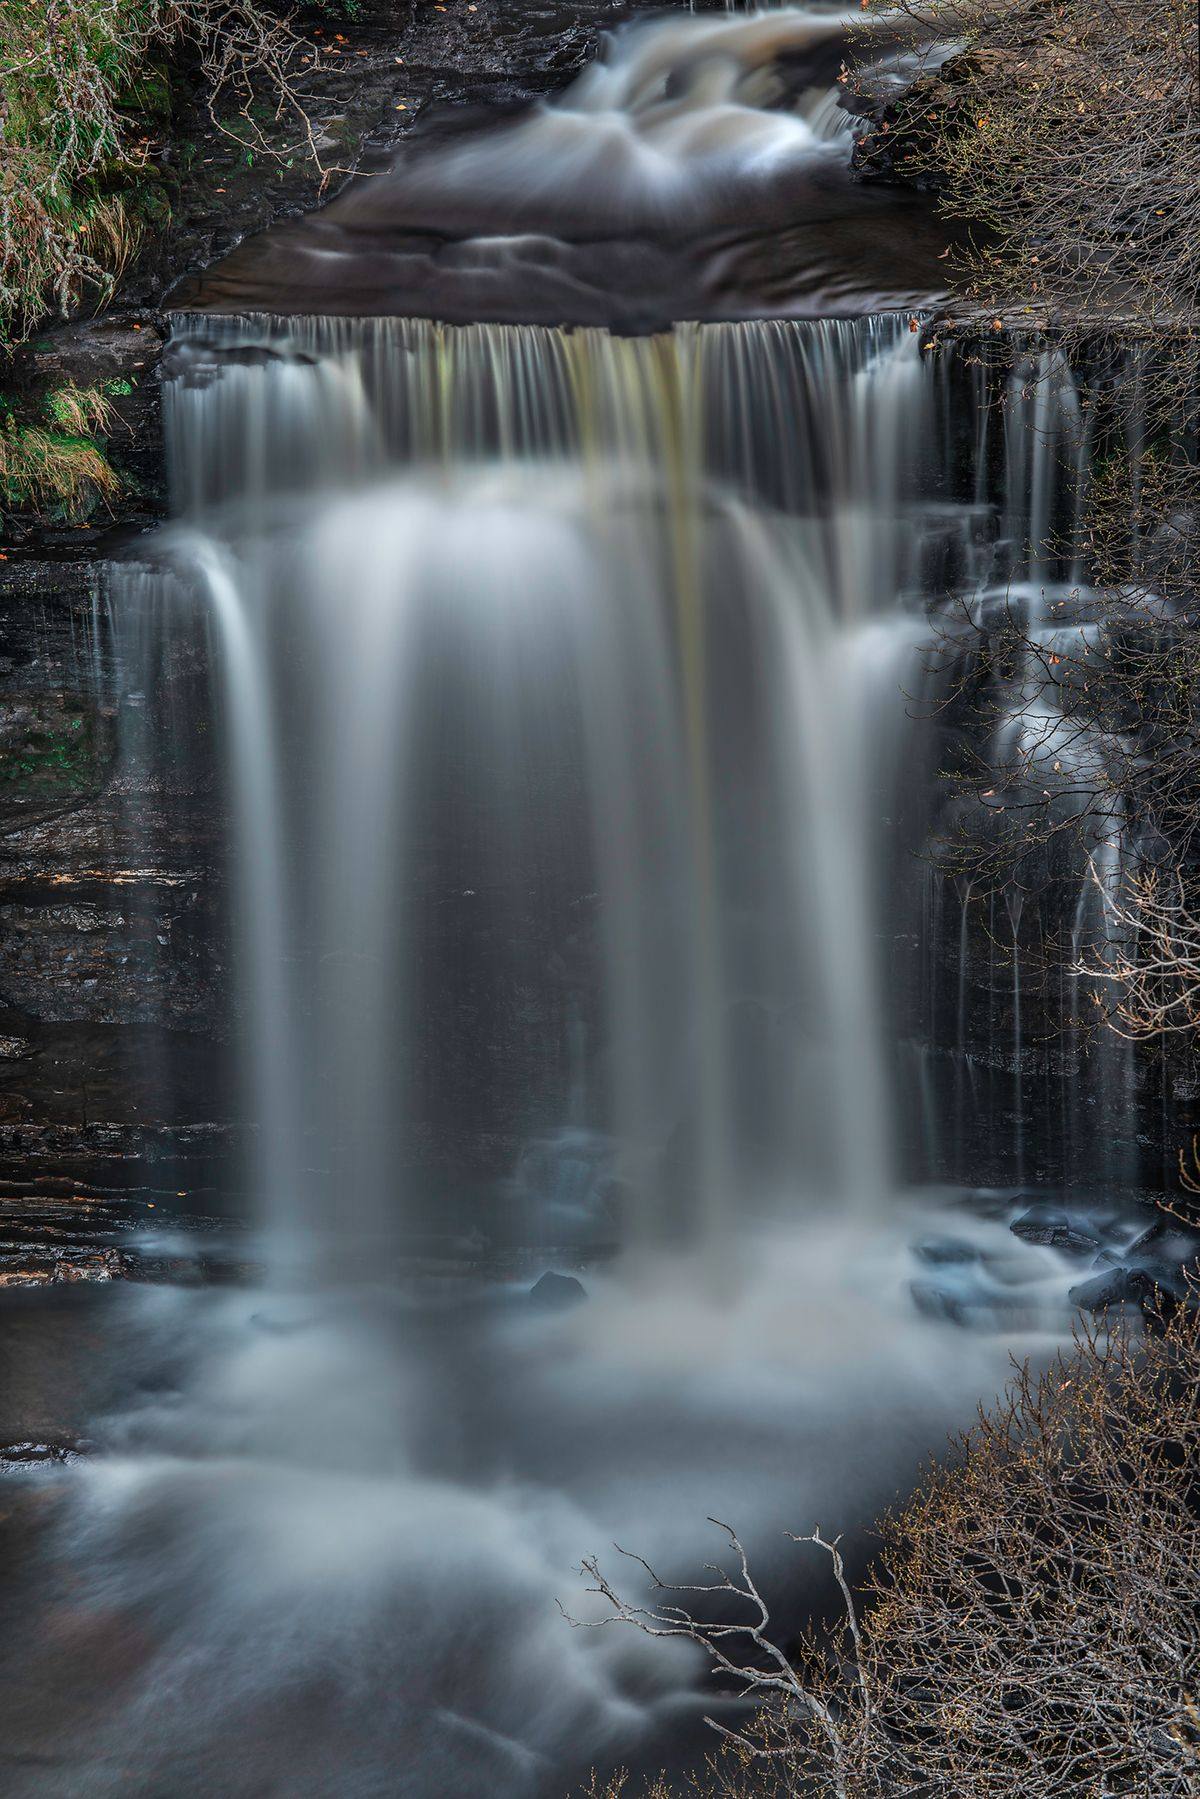 Wasserfall / water fall (Isle of Skye / Schottland - Scotland) l&n291